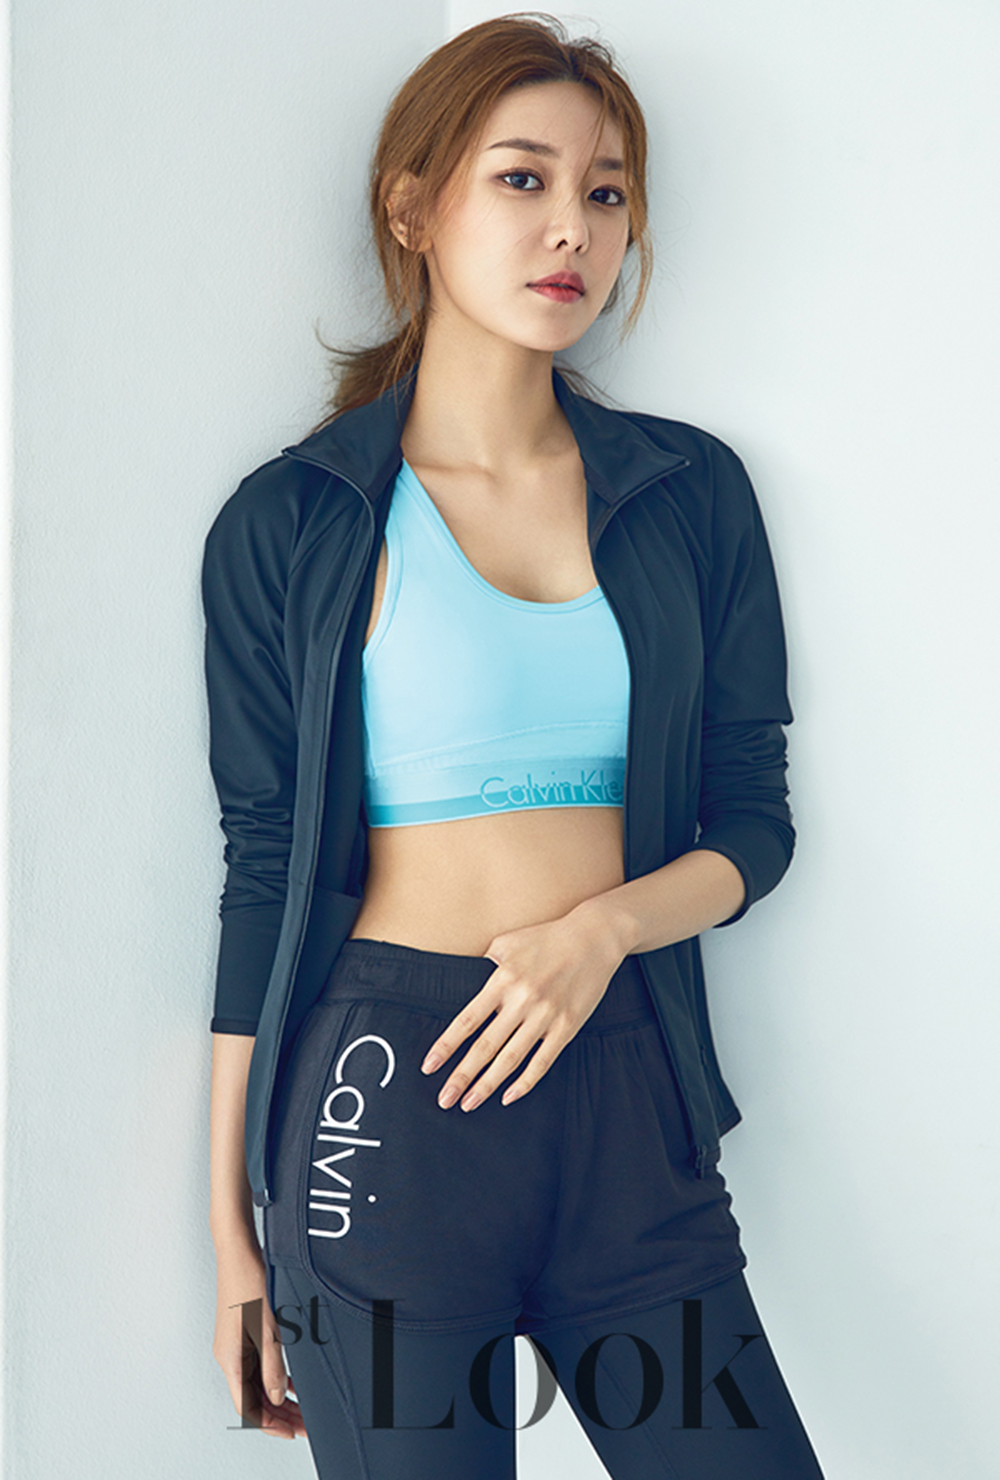 snsds gorgeous sooyoung for 1st look magazine snsd oh